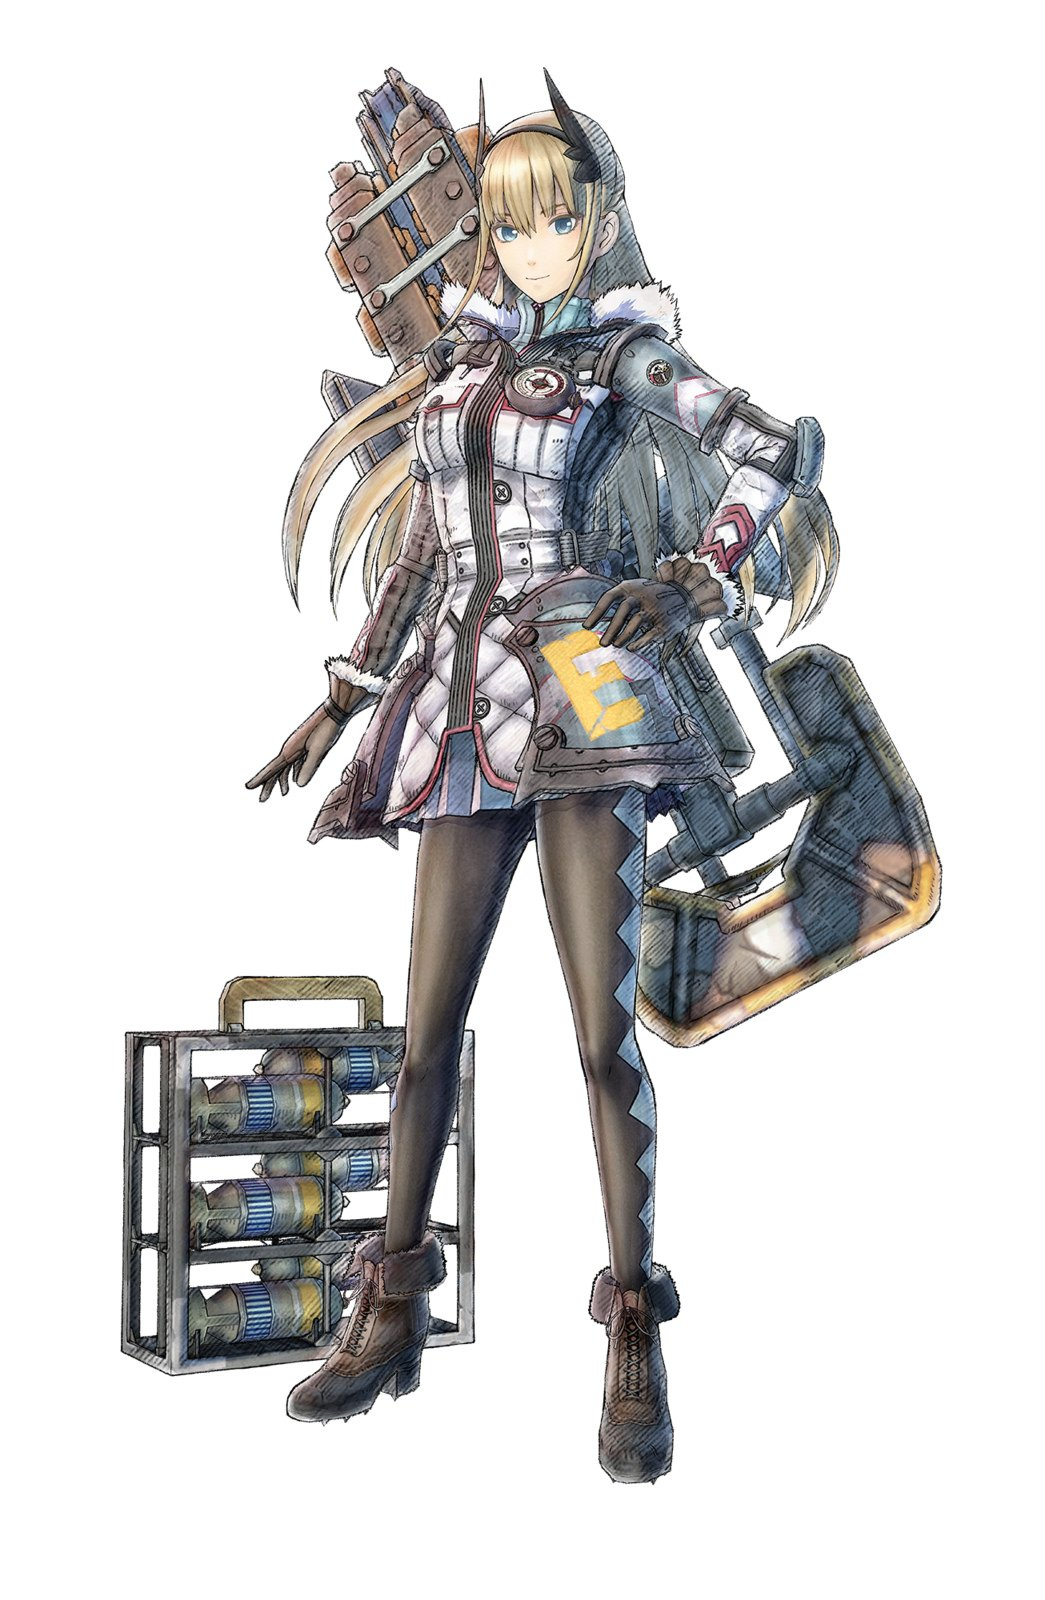 All the details from the recently revealed Valkyria Chronicles 4, coming to PS4 in 2018: https://t.co/84uQNeGKZT https://t.co/Xr9rF7dleH